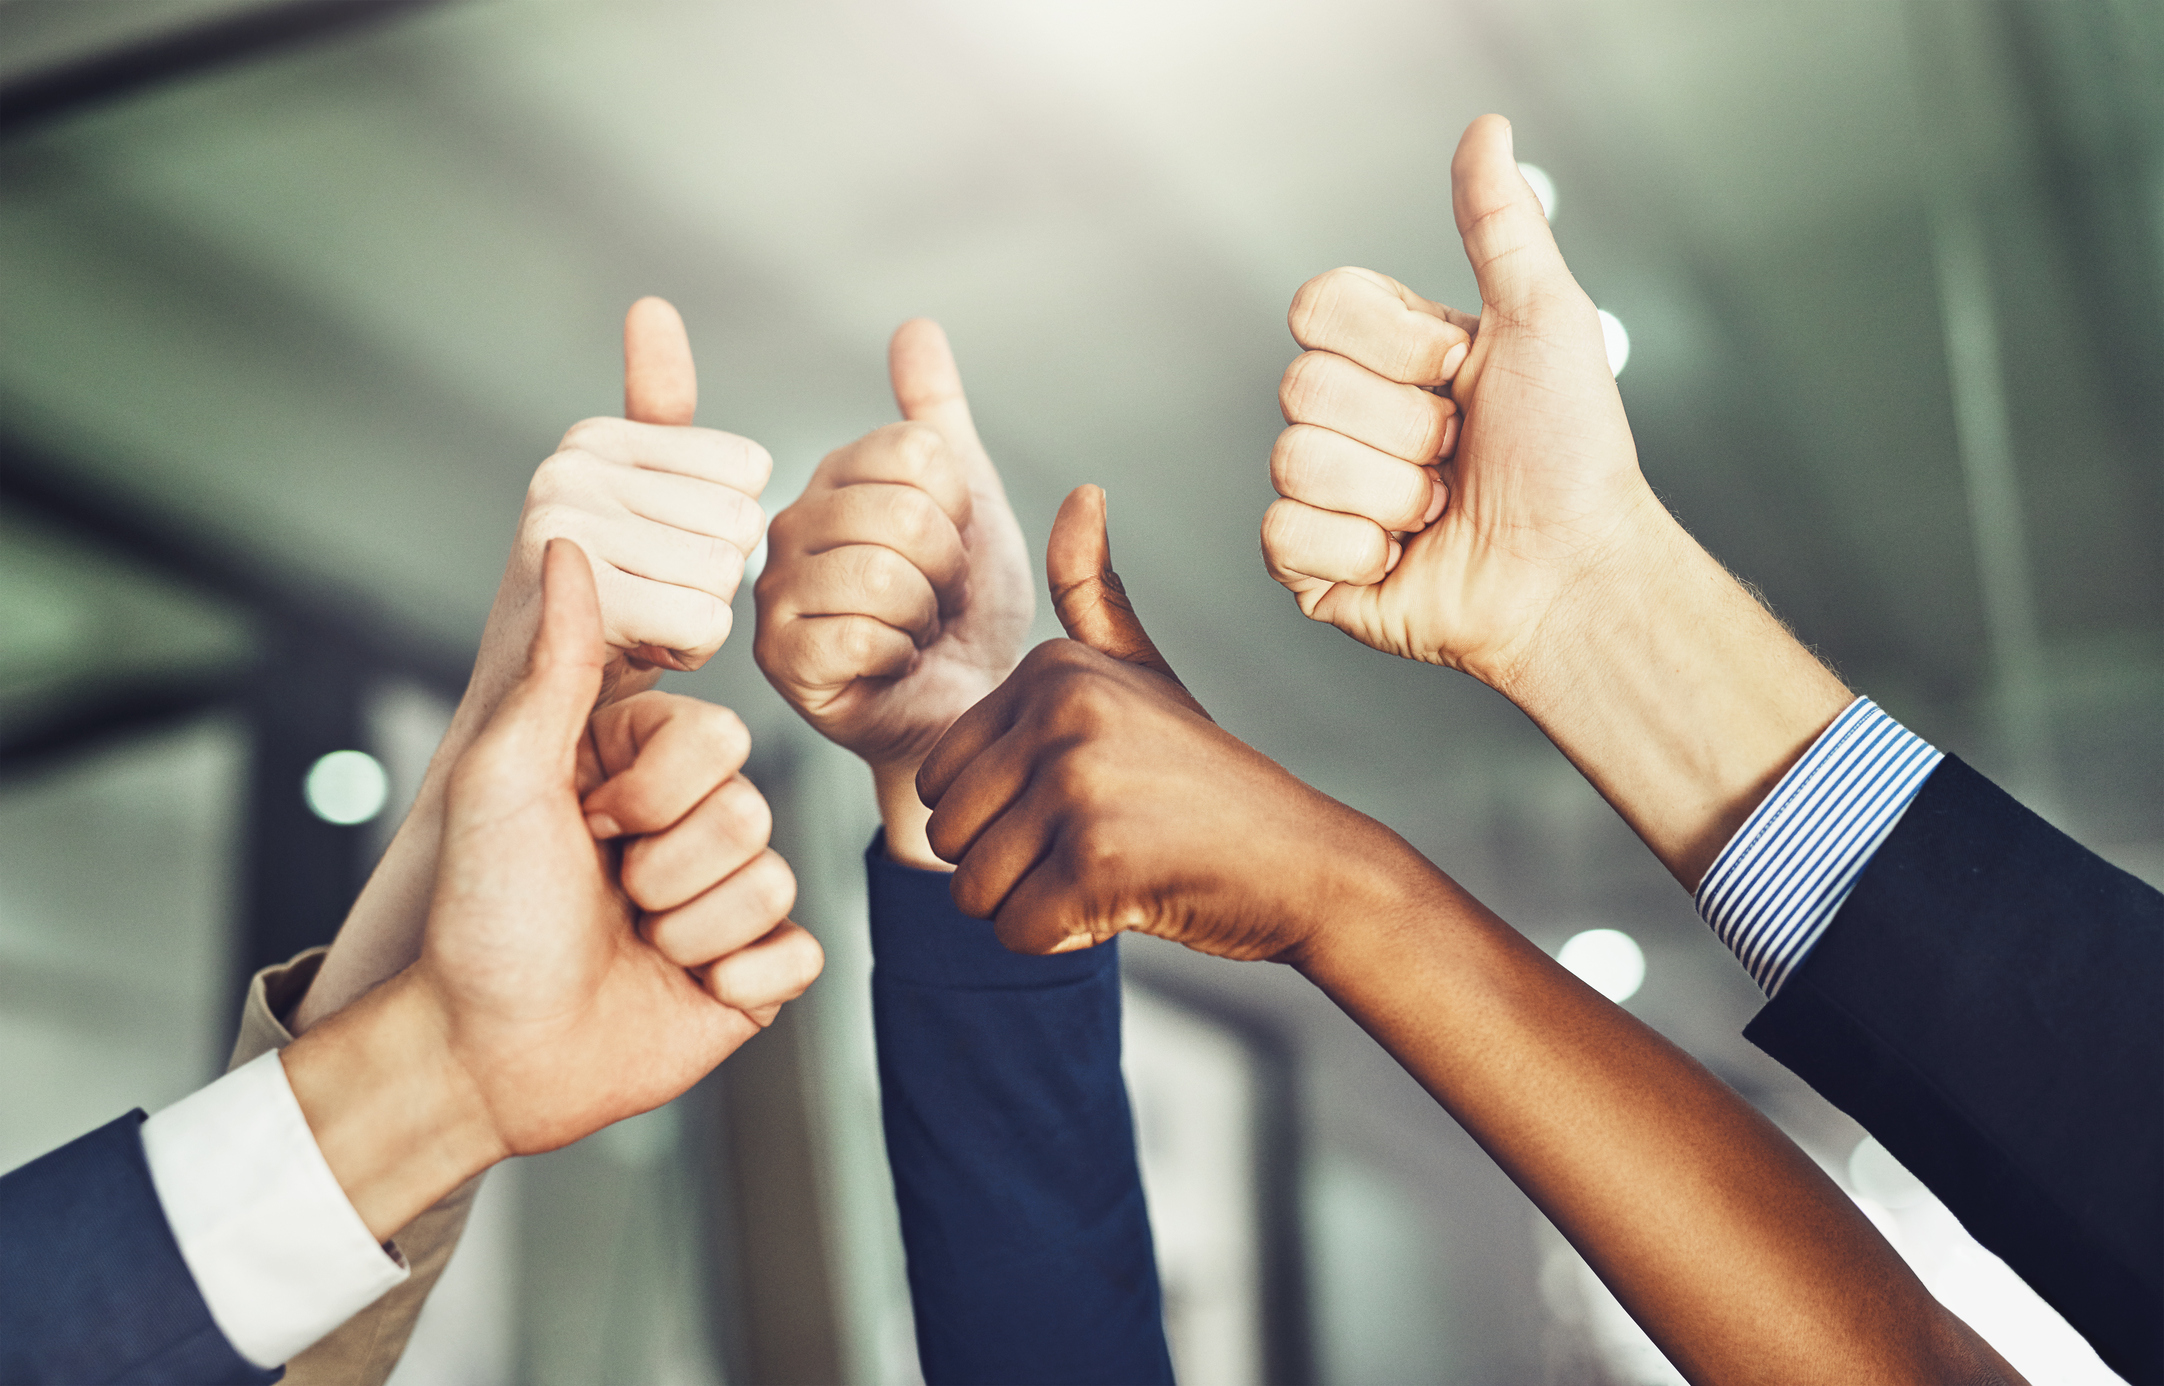 Stock photo of group holding thumbs in the air